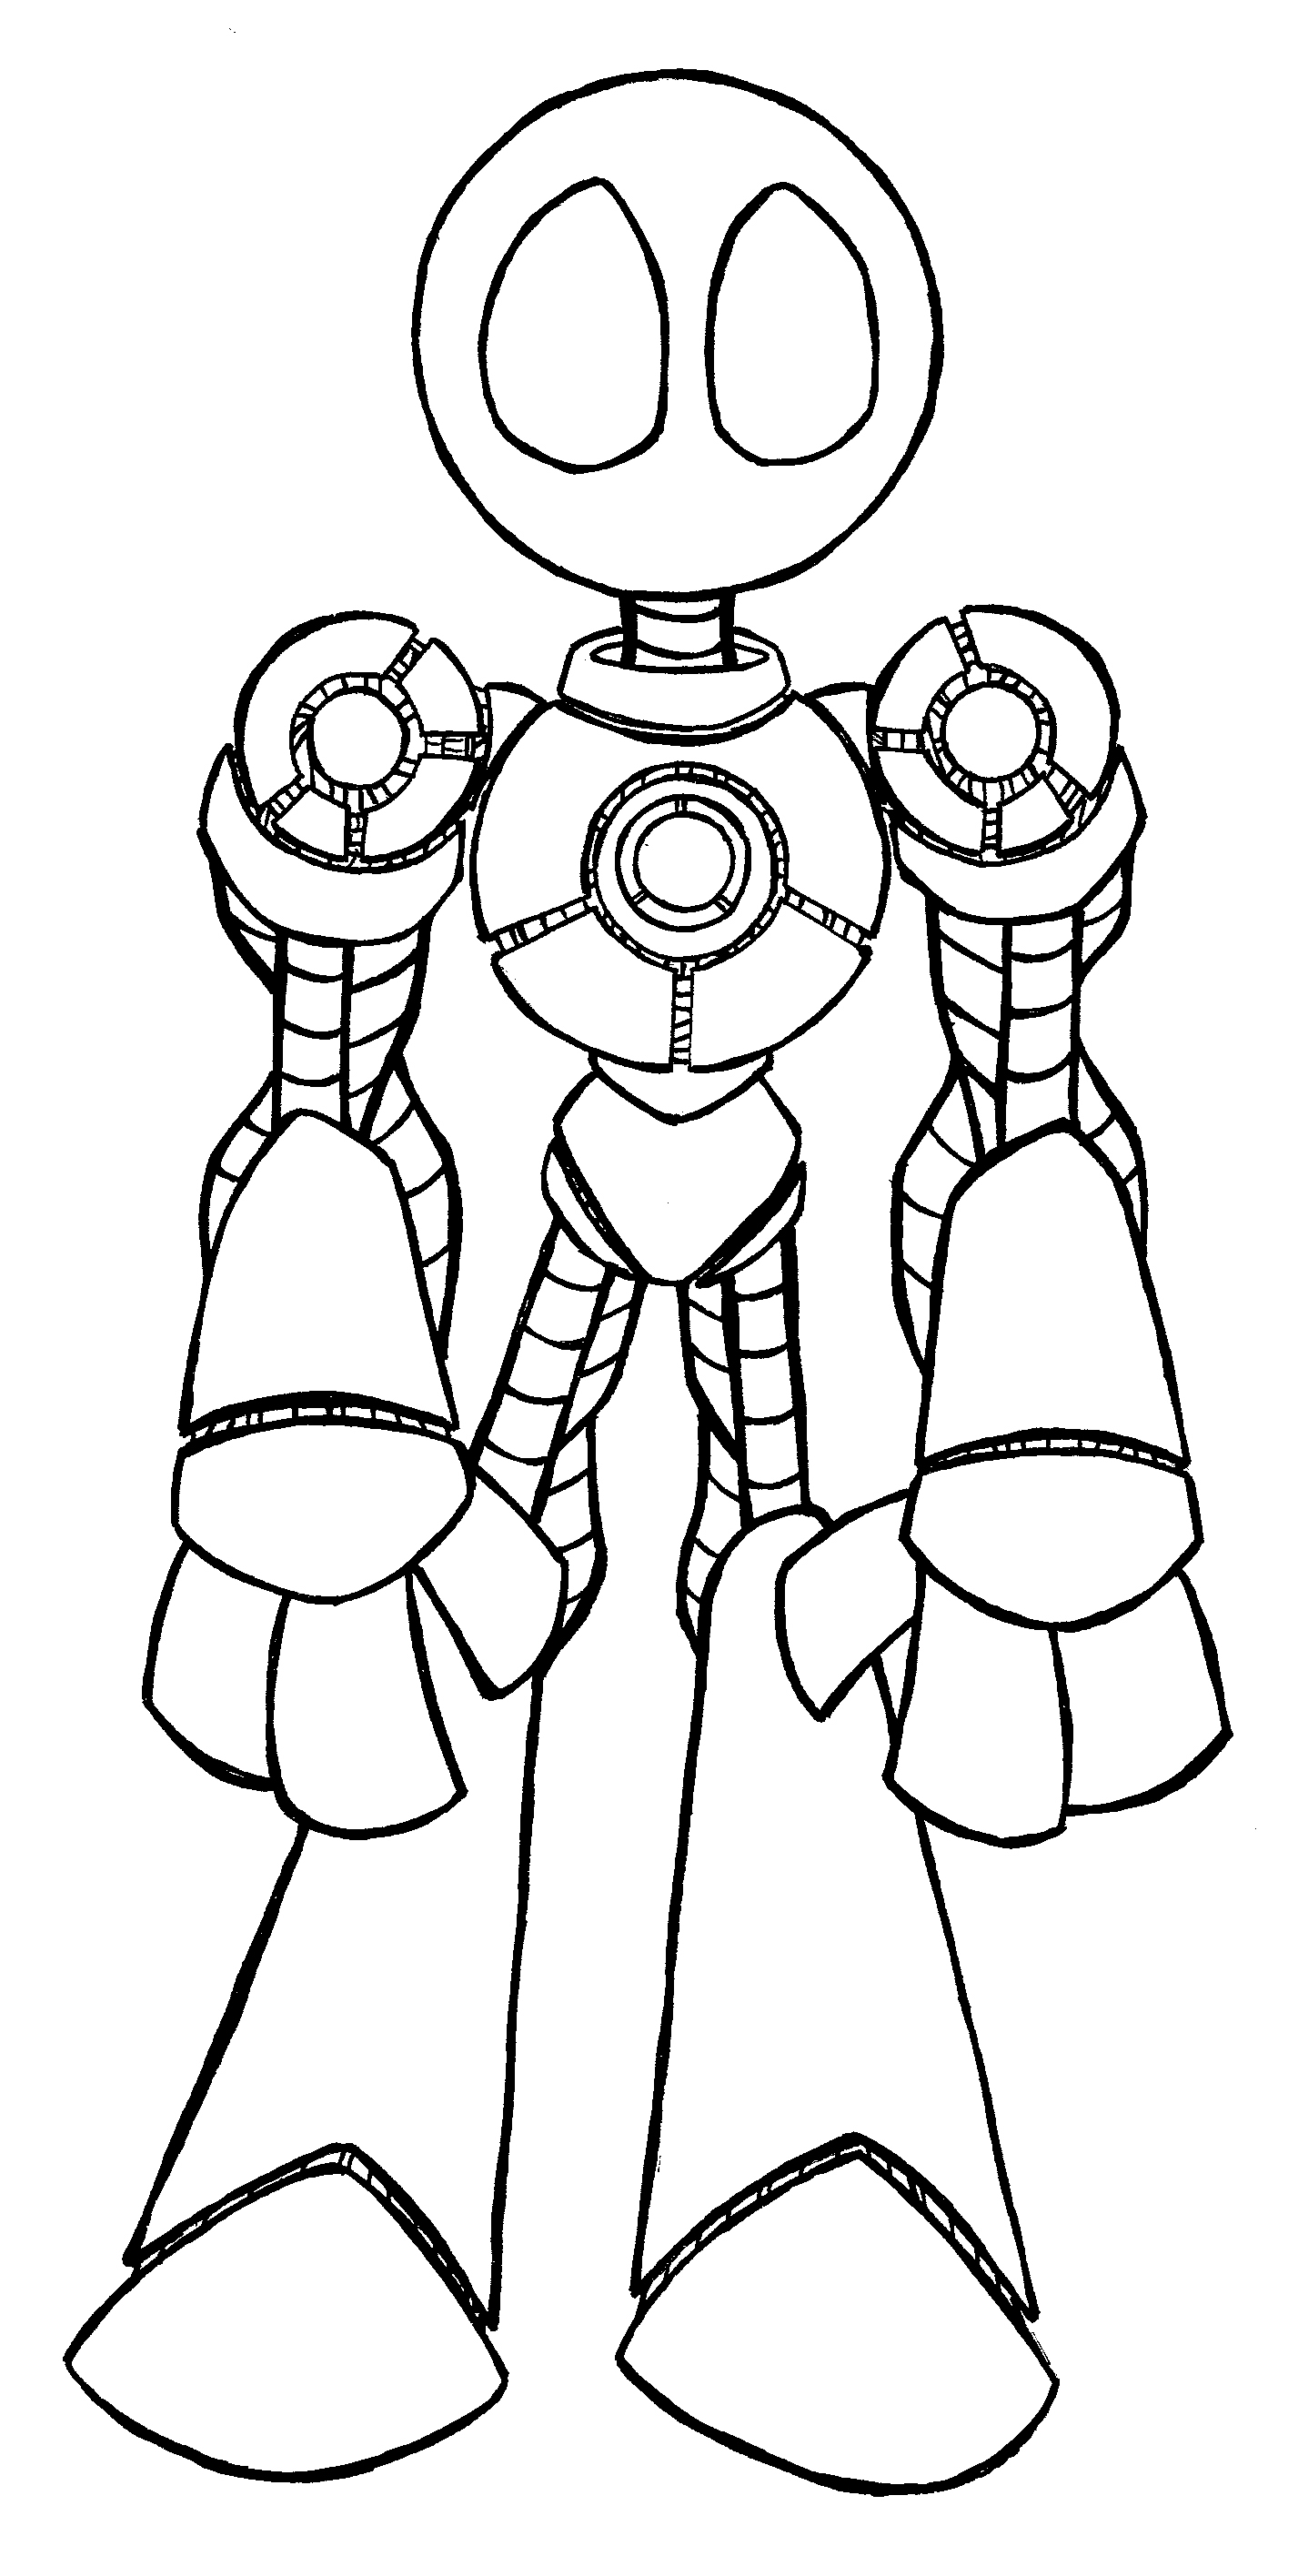 1438x2832 Drawing Of A Robot How To Draw A Robot For Kids Howtodrawforkids